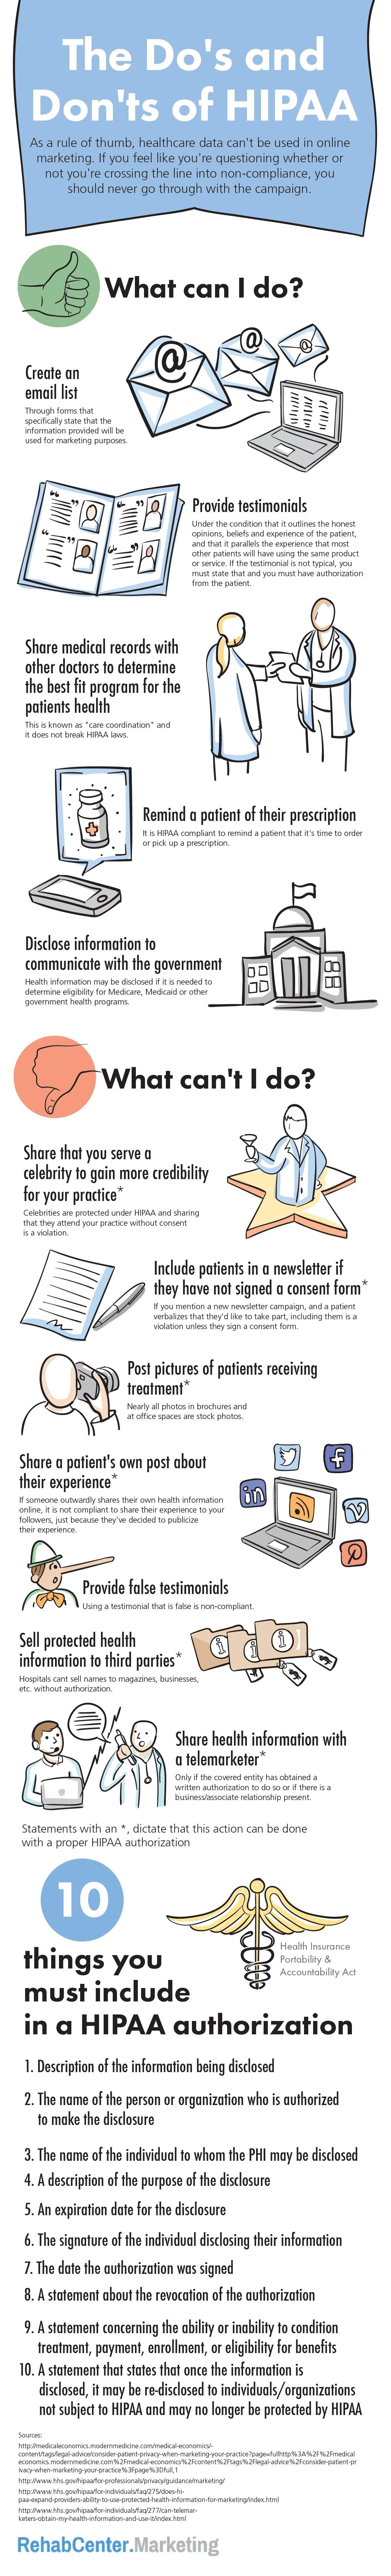 HIPAA Do's and Don'ts #infographic